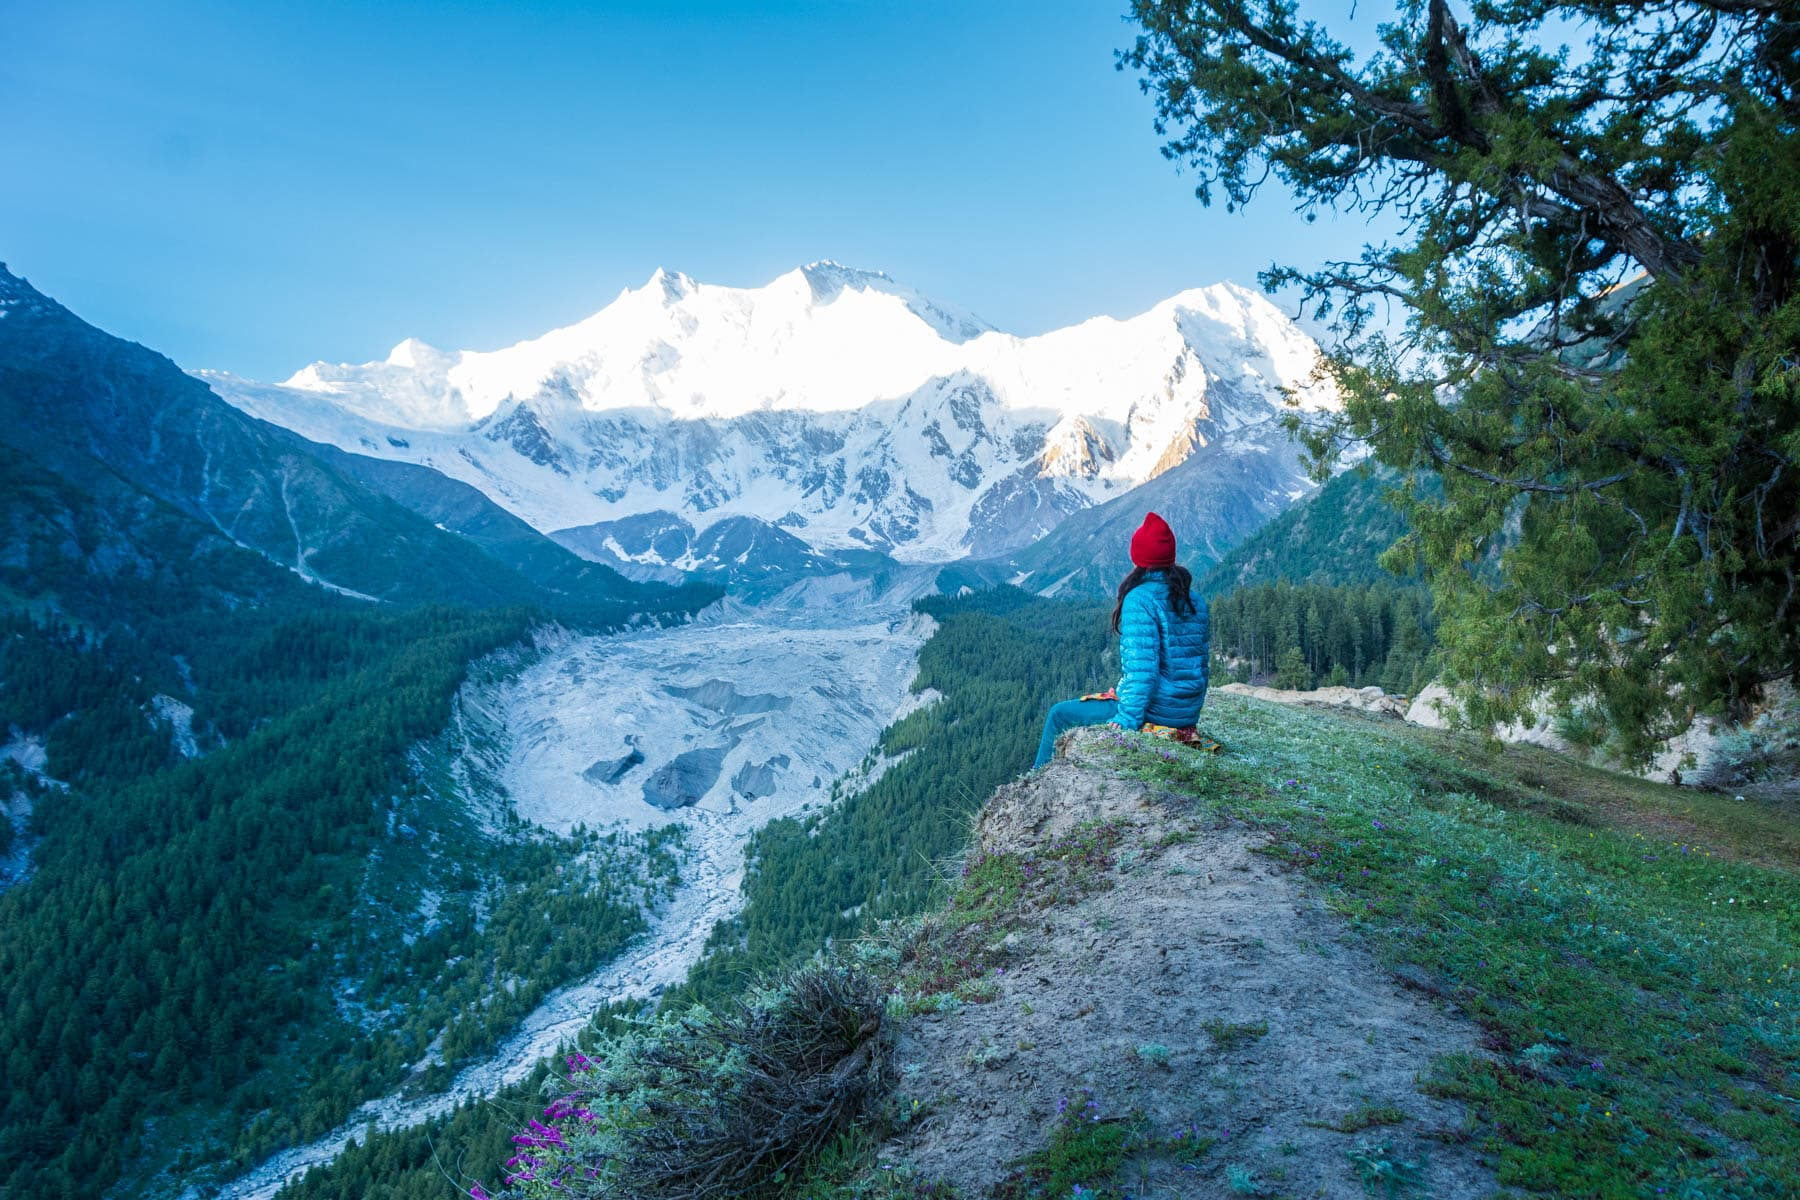 Breaking up on the road - Alex alone looking out over Nanga Parbat mountain from Fairy Meadows, Pakistan - Lost With Purpose travel blog